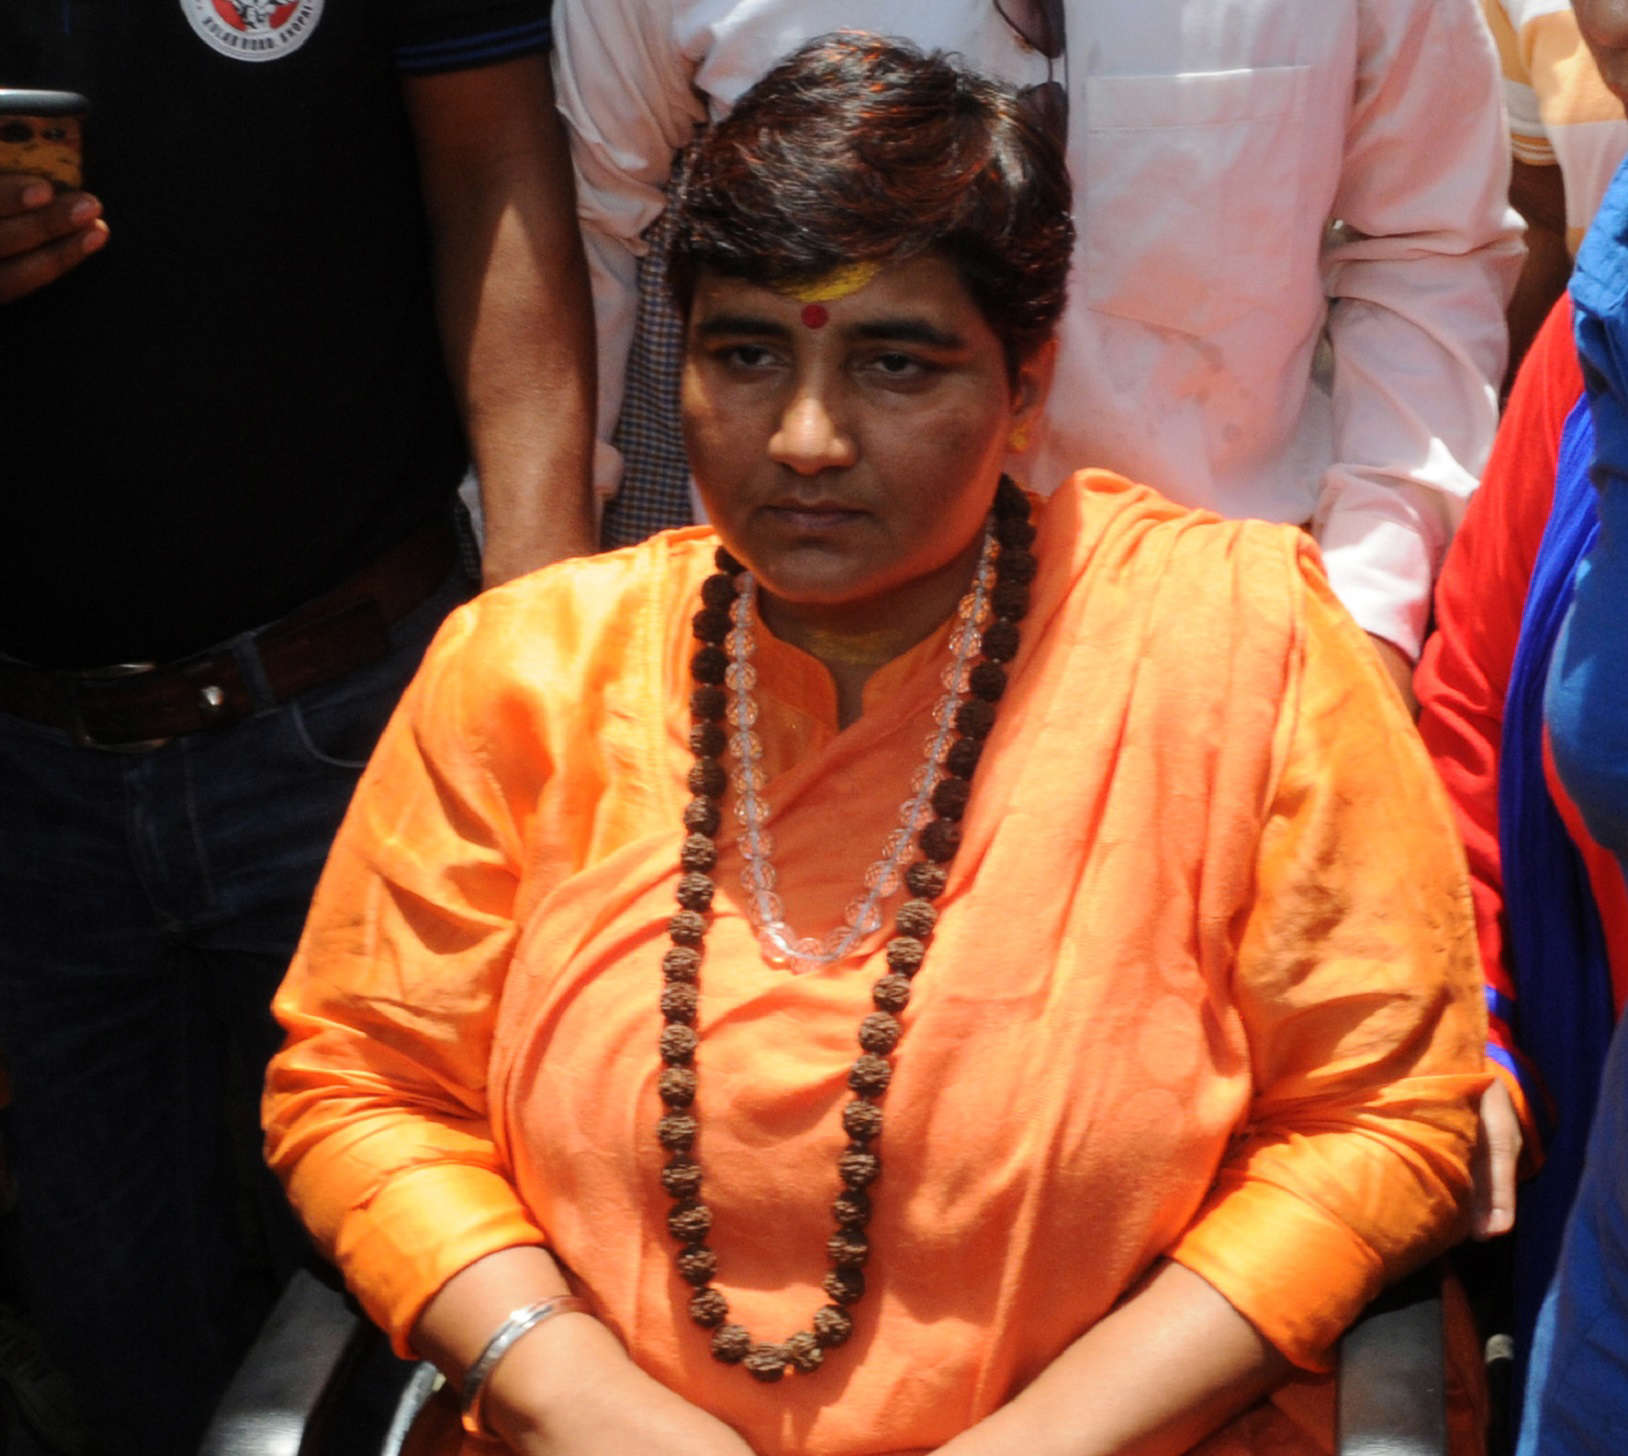 Slide 30 of 31: CAPTION: BHOPAL, INDIA - MAY 18: Hindu activist Sadhvi Pragya Singh Thakur leaving for Simhastha in Ujjain under heavy police protection on May 18, 2016 in Bhopal, India. Pragya Singh Thakur, who got a clean chit from the NIA in the 2008 Malegaon blasts case, went on an indefinite hunger strike on Monday to press for her demand that she be allowed to take a dip in Kshipra in Ujjain during the ongoing Simhastha. (Photo by Praveen Bajpai/Hindustan Times via Getty Images)